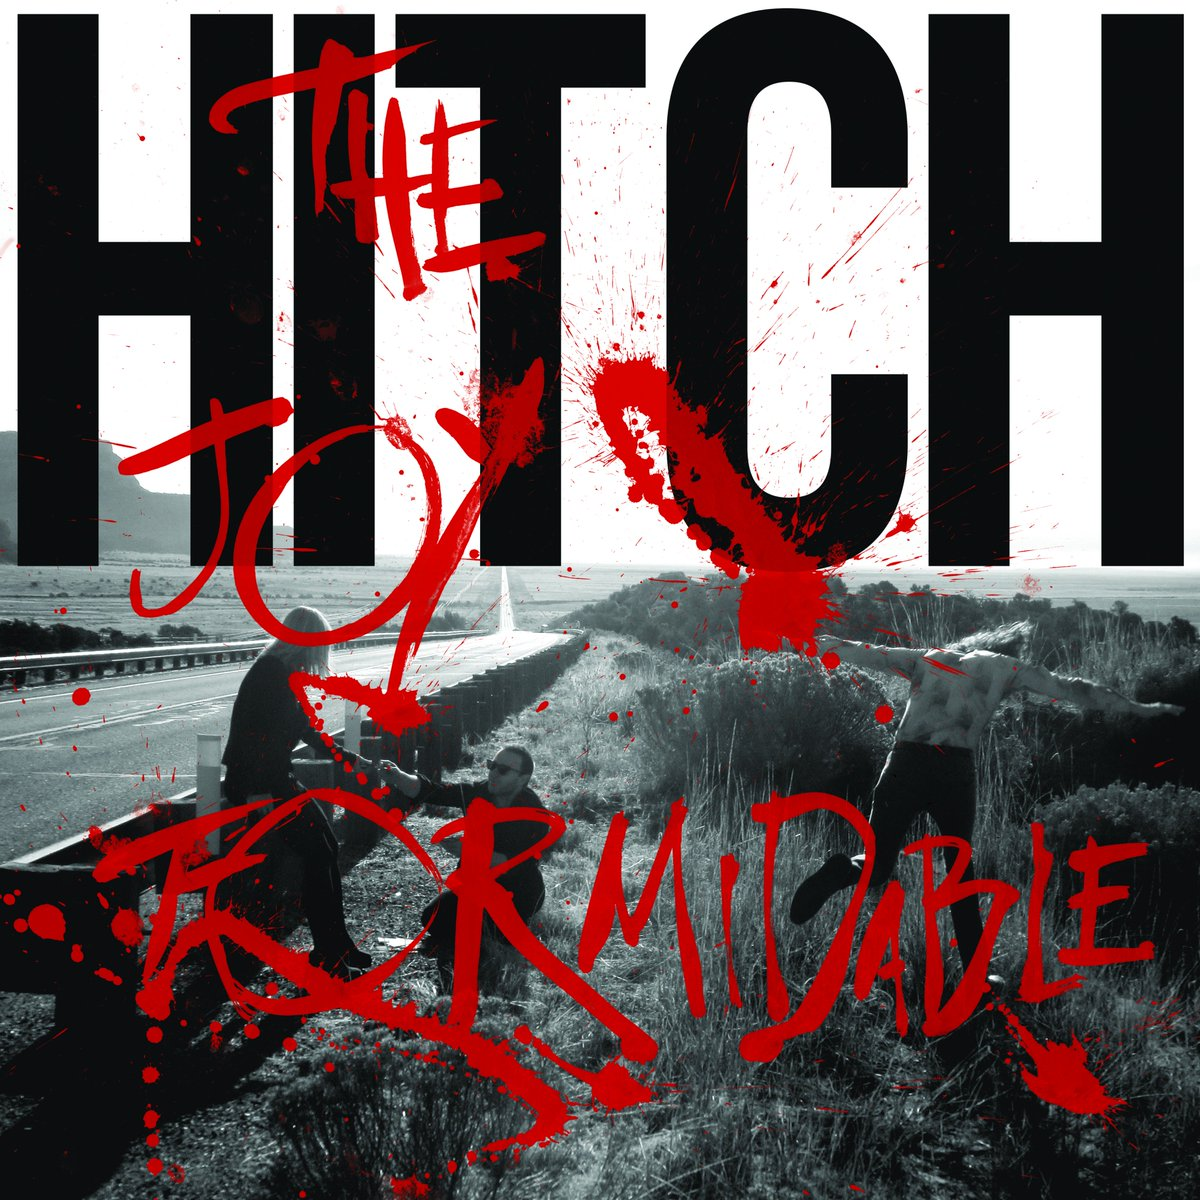 New album Hitch in stores March 25th. Preorder here https://t.co/LS2ZGqVvPq video here https://t.co/IawVTtIxsF https://t.co/UOi80wYmGh